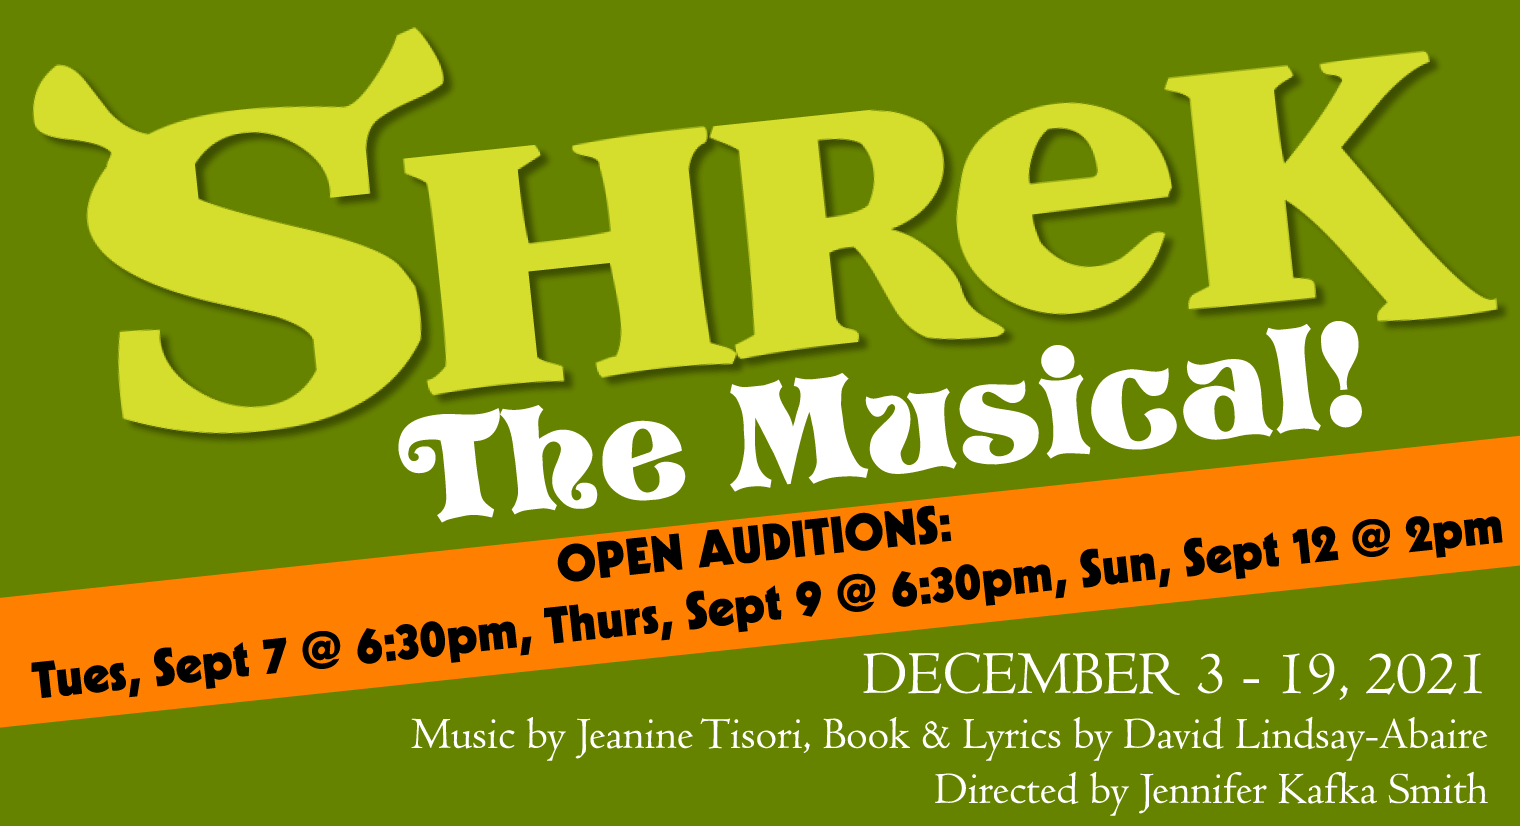 OPEN AUDITIONS for Shrek: The Musical at the Garfield